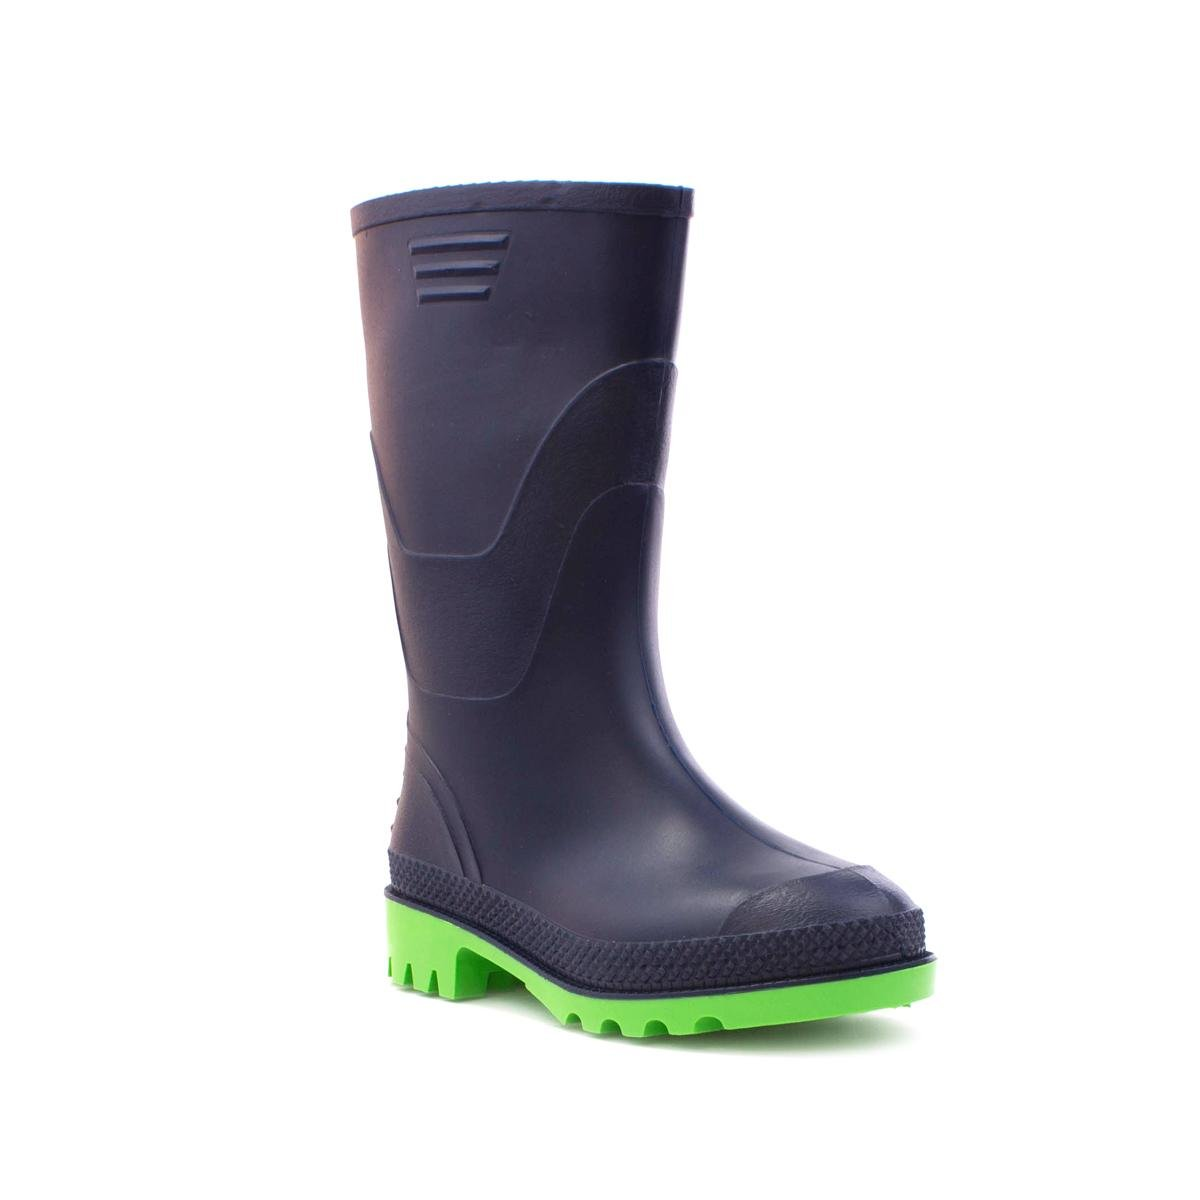 Zone Hearts Kids Wellington Boots in Navy and Green - Size 4 UK/5 Youth US - Blue